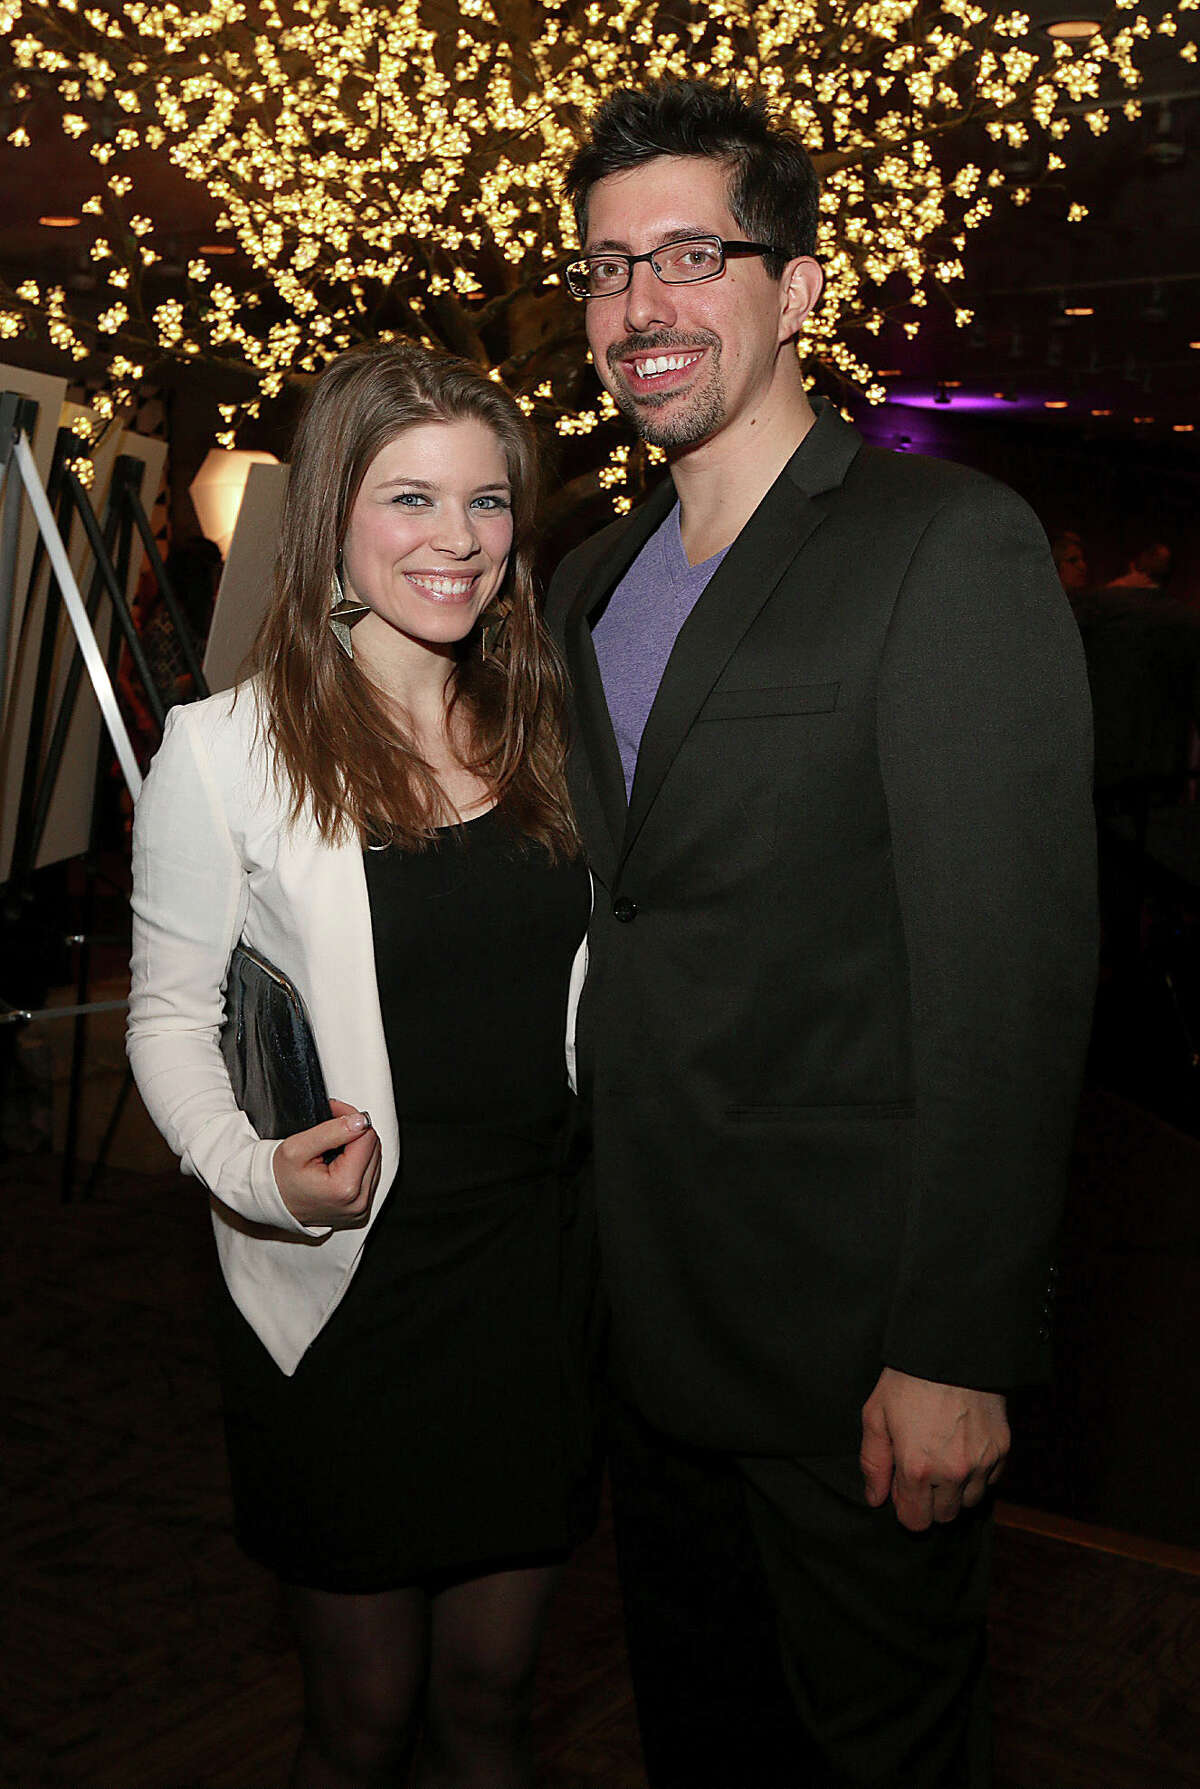 Were you Seen at the 20th anniversary of the Beaujolais Nouveau Wine Celebration, a benefit for the AIDS Council of Northeastern New York, held at the Empire State Plaza Convention Center in Albany on Friday, Nov. 21, 2014?